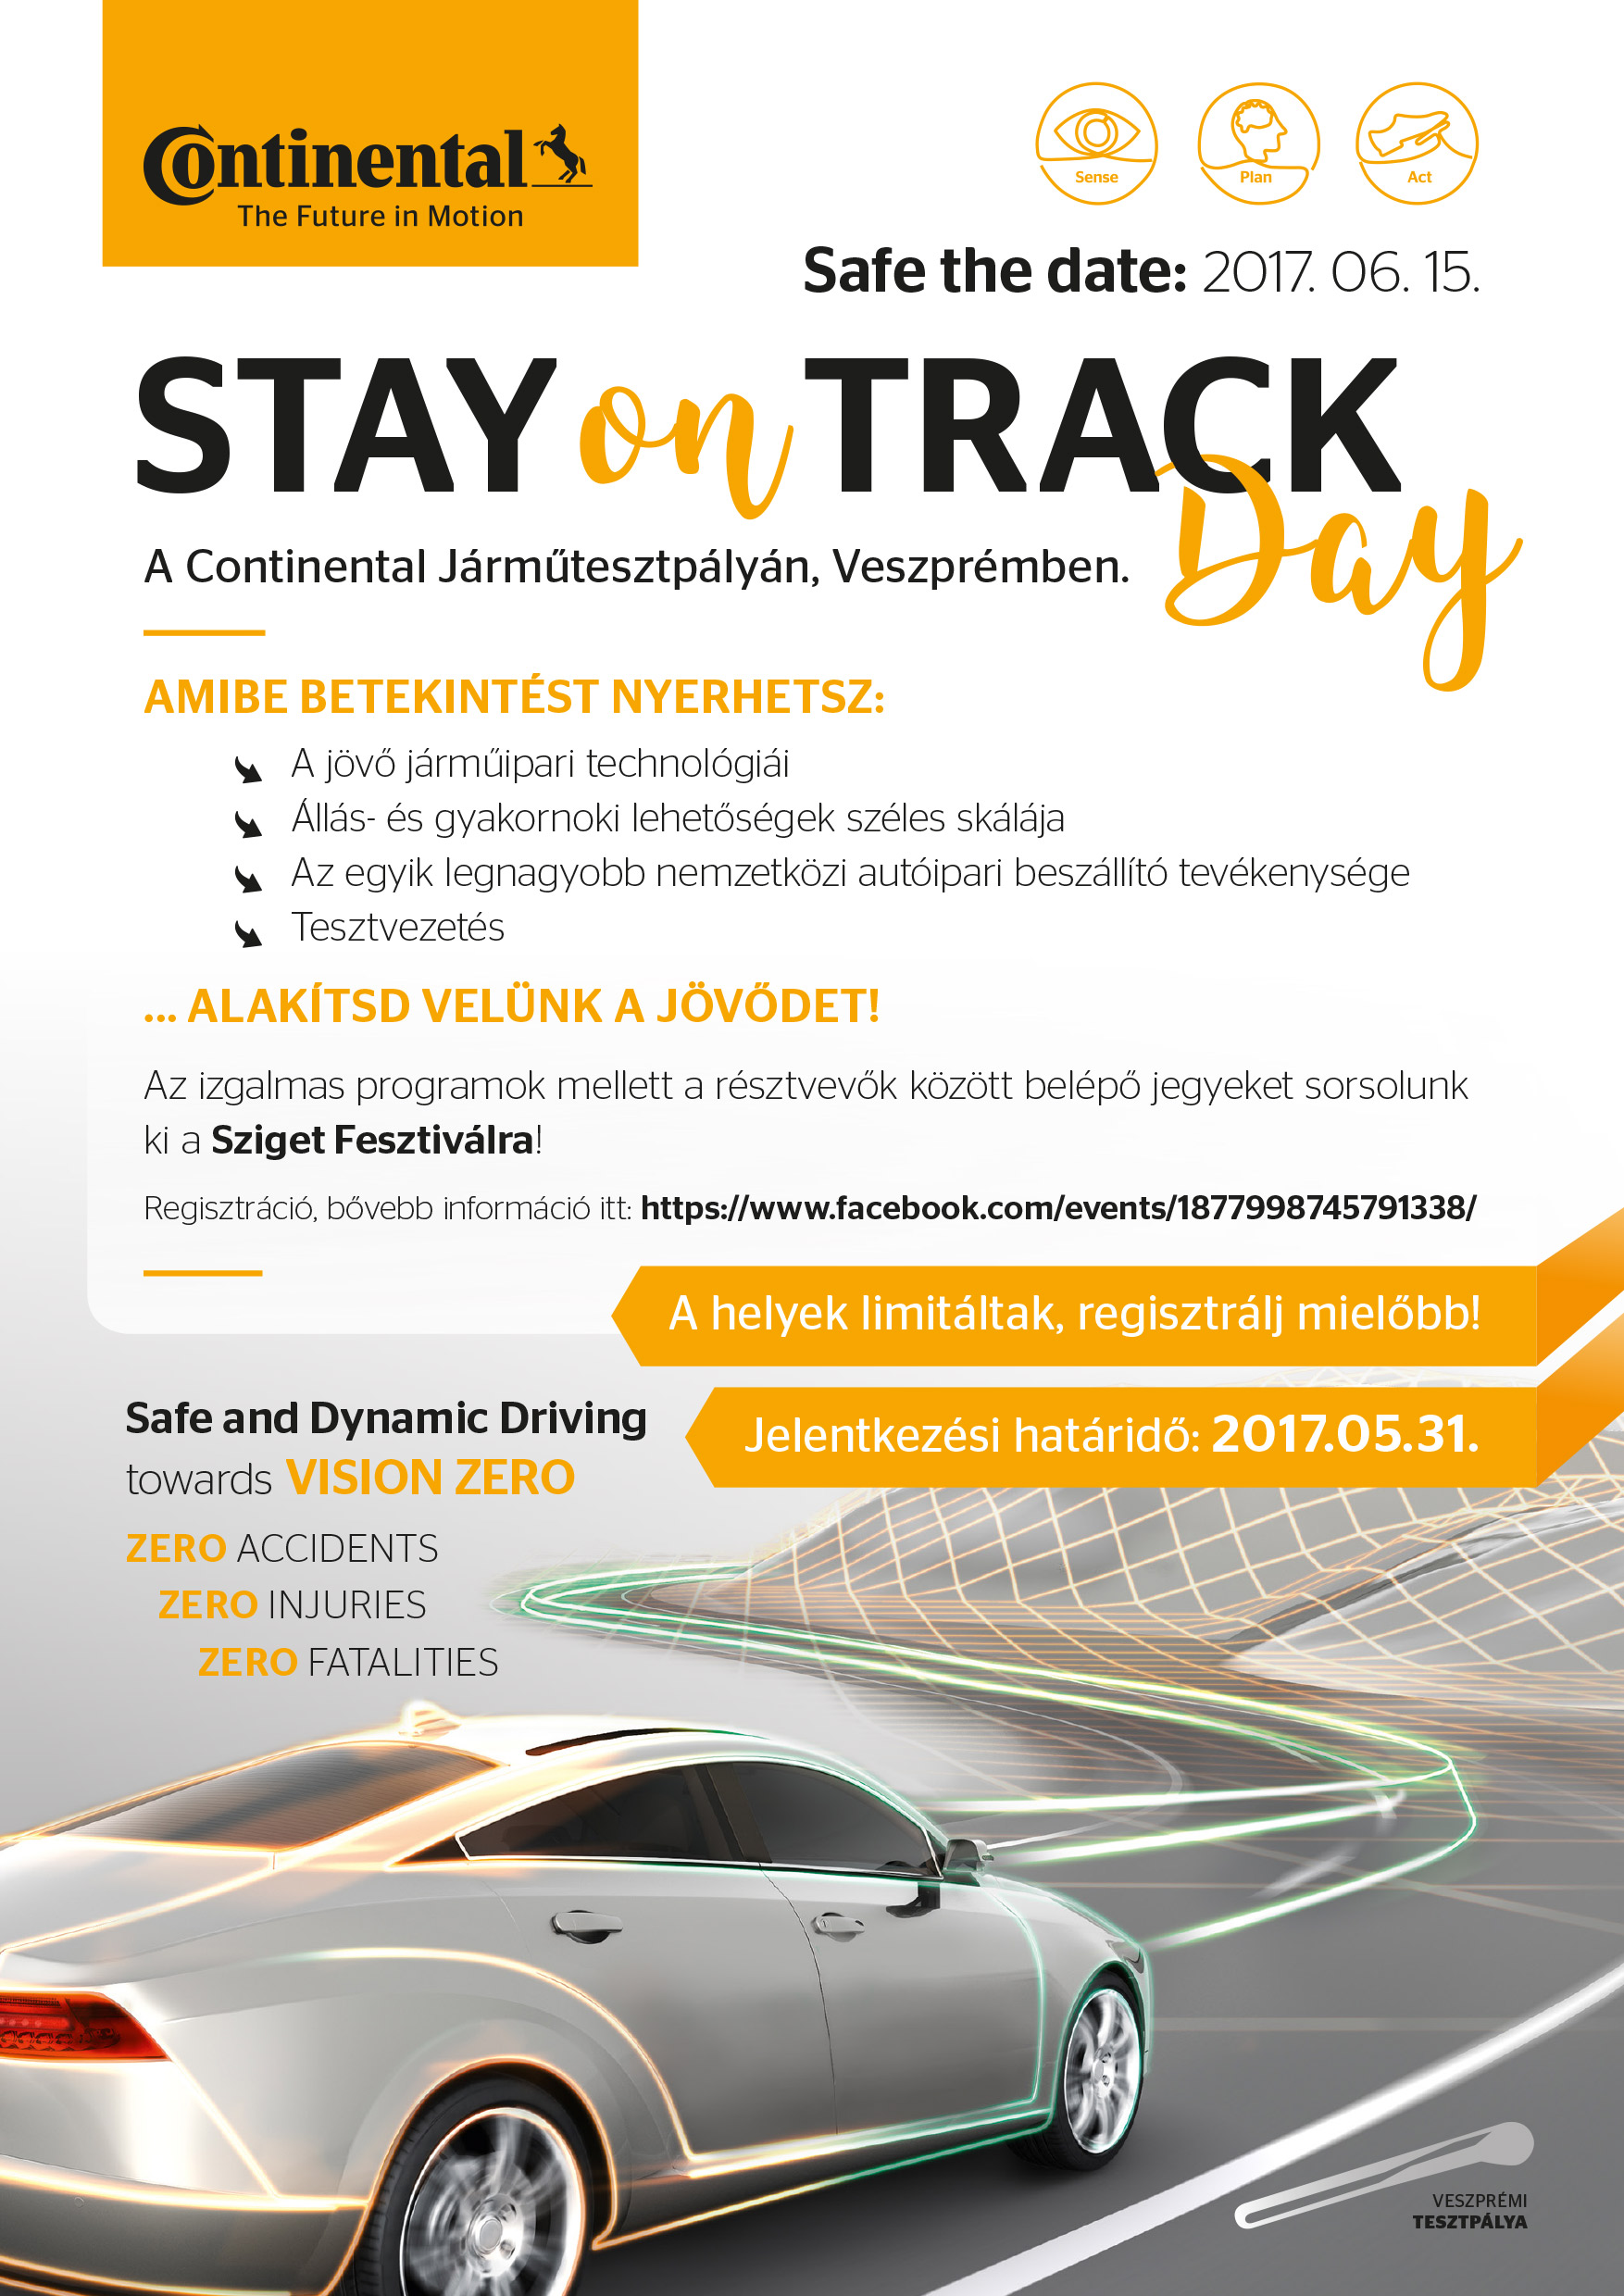 Stay on track day online poster